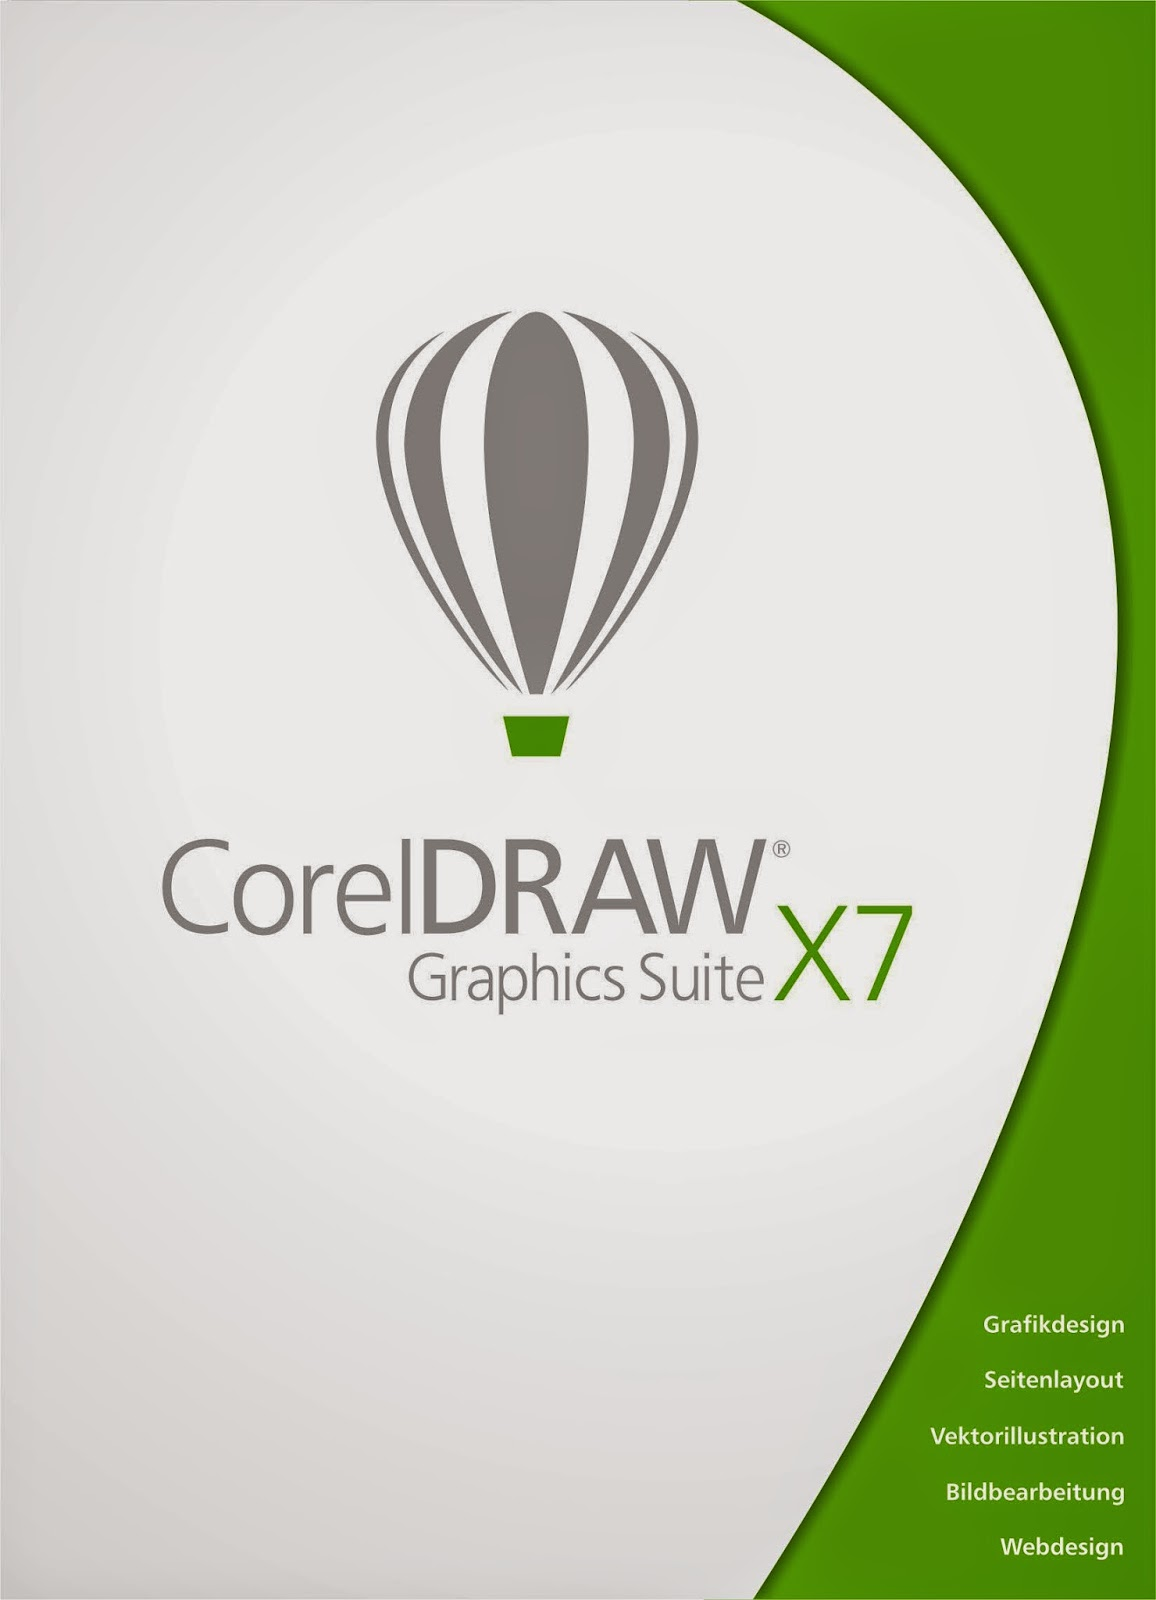 CorelDRAW Graphics Suite X7 Terbaru Full Version dan Tutorial Crack